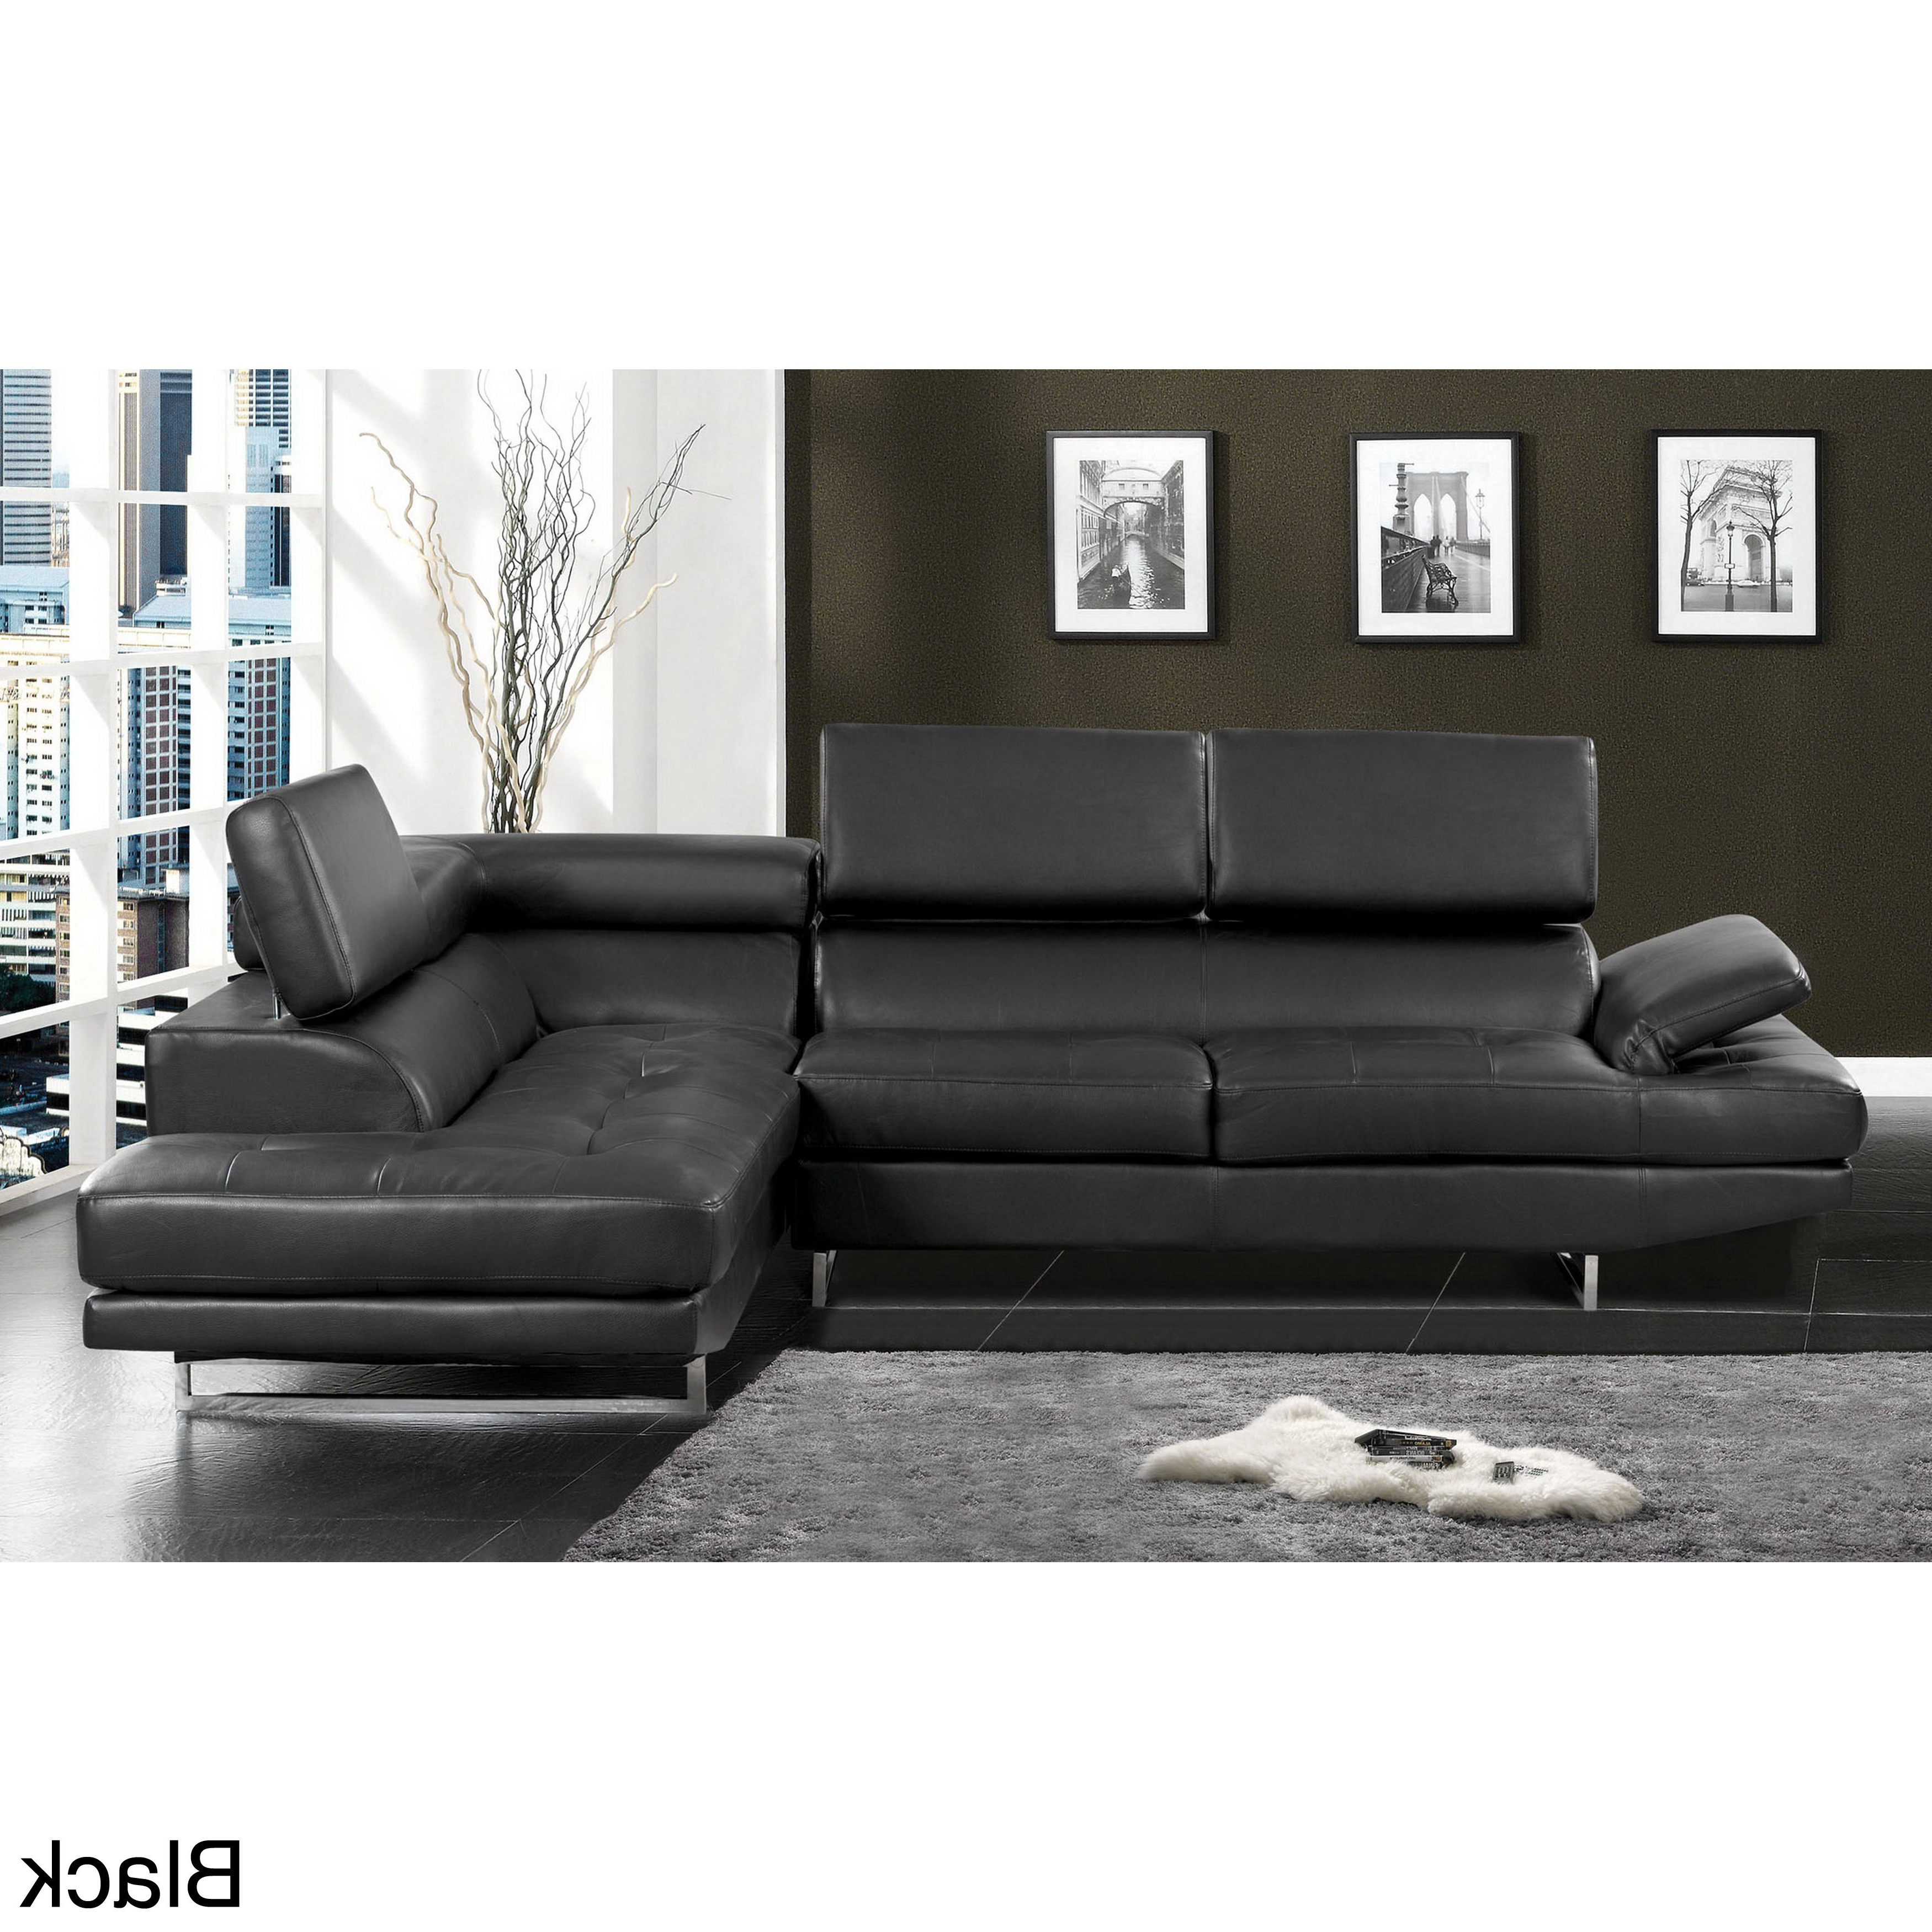 Tenny Cognac 2 Piece Left Facing Chaise Sectionals With 2 Headrest Regarding Newest Leather Sectional With Adjustable Headrest @os (View 16 of 20)